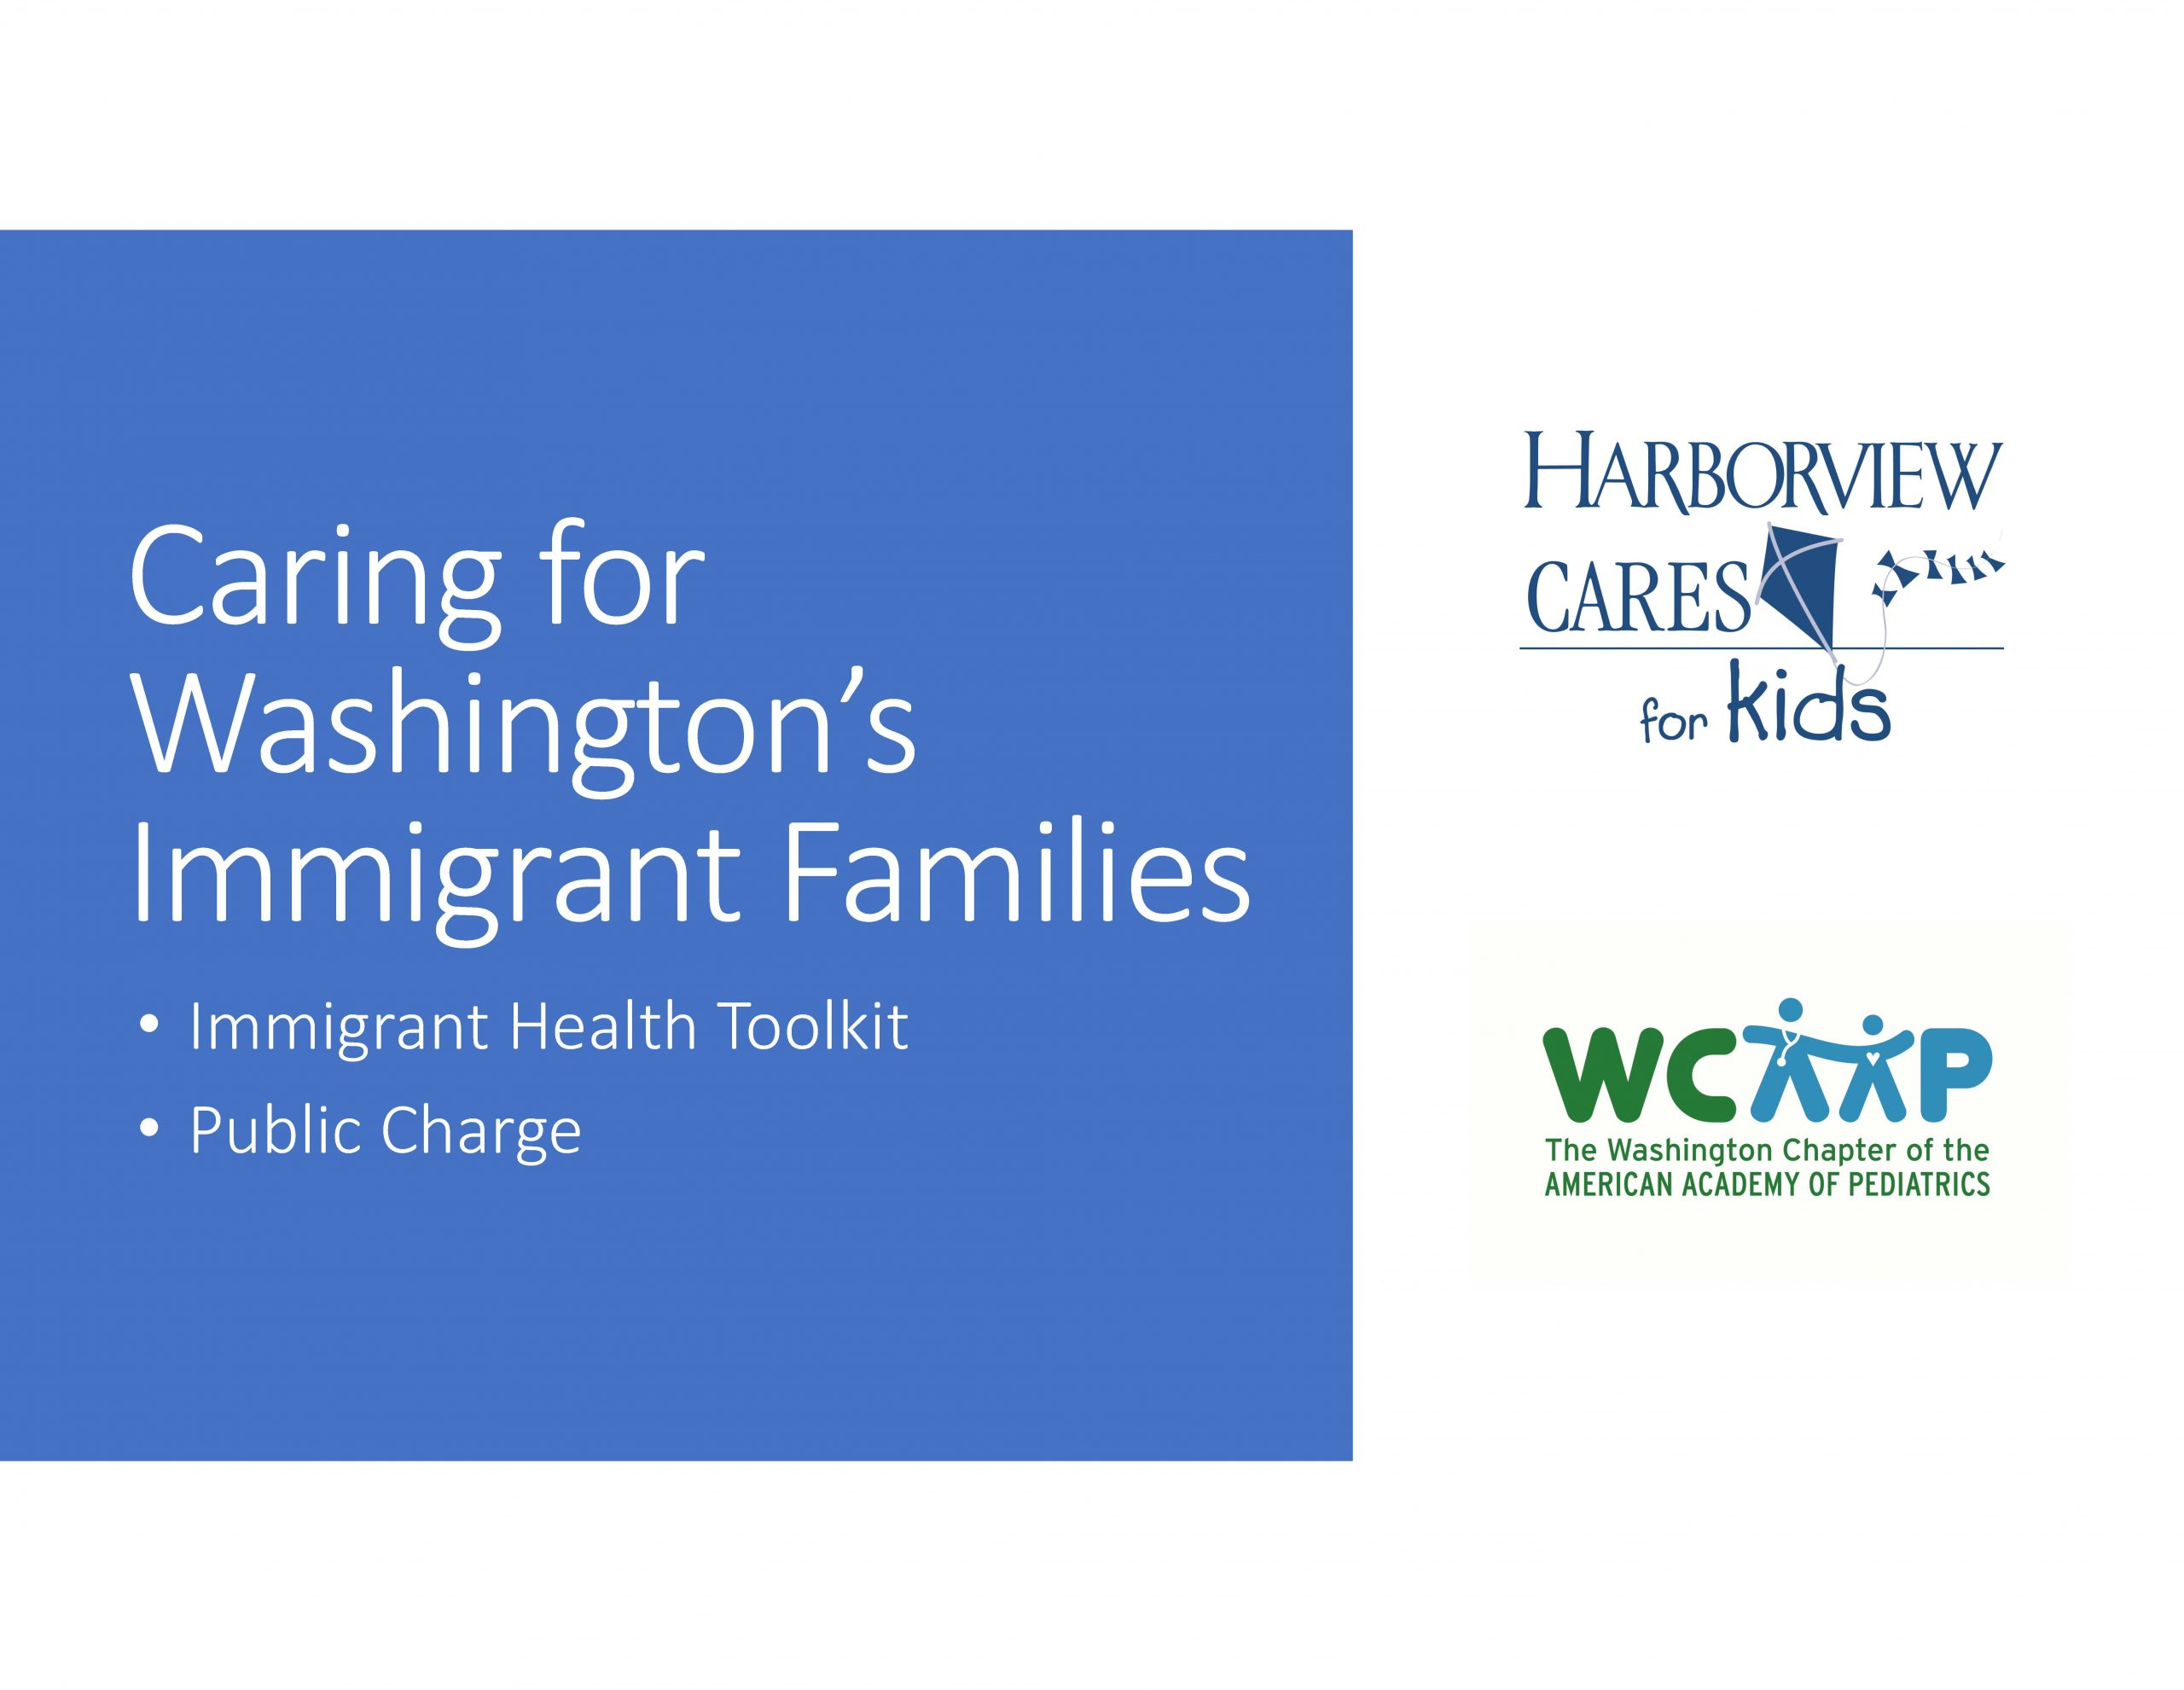 https://wcaap.org/physicians/immigrant-health/